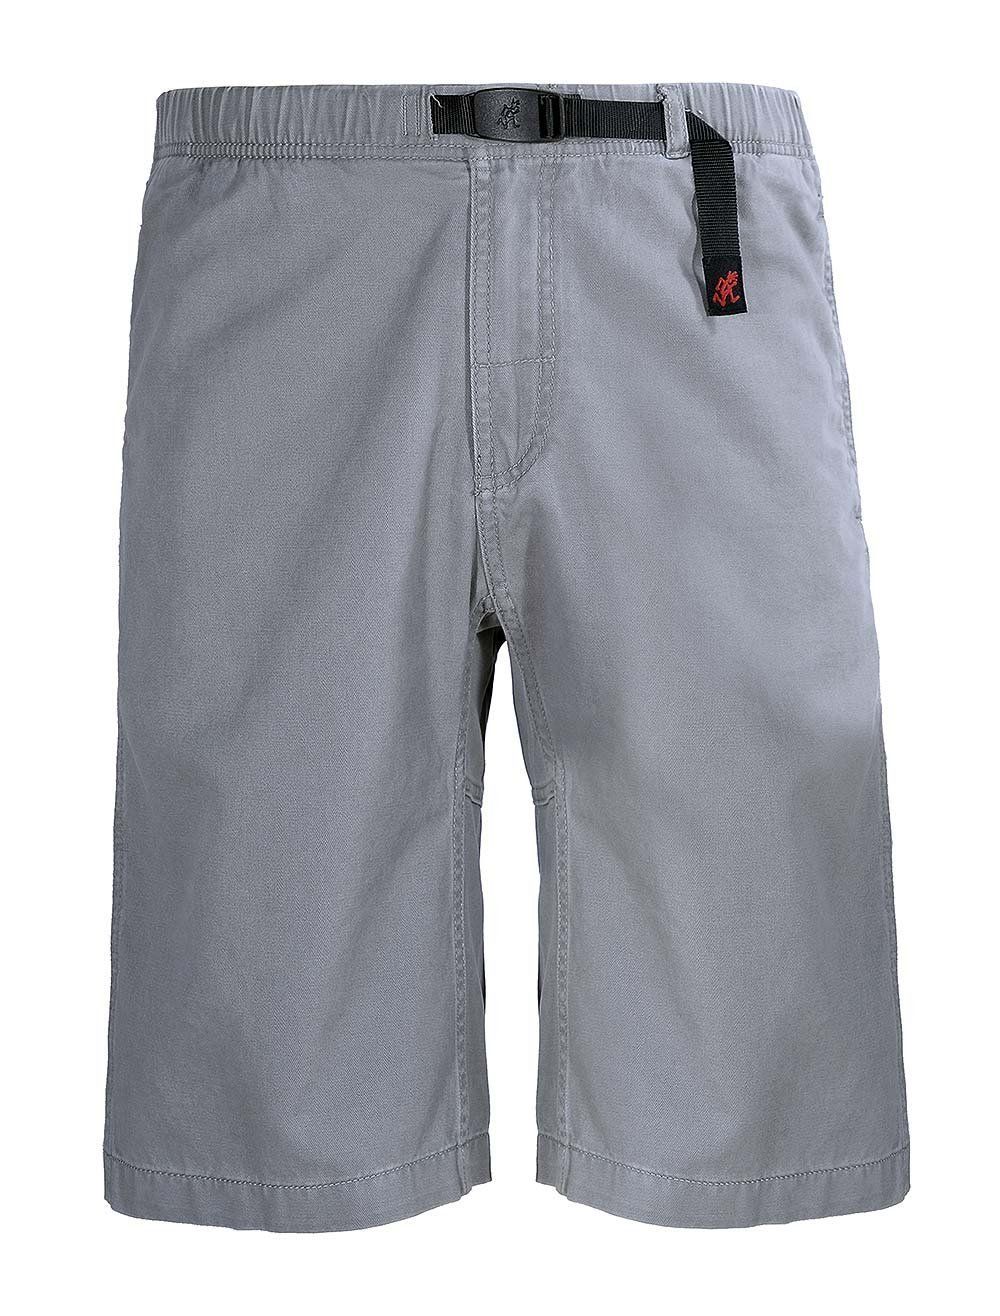 Gramicci Rockin Sport Short - Men's-Stainless Steel-X-Large by Gramicci